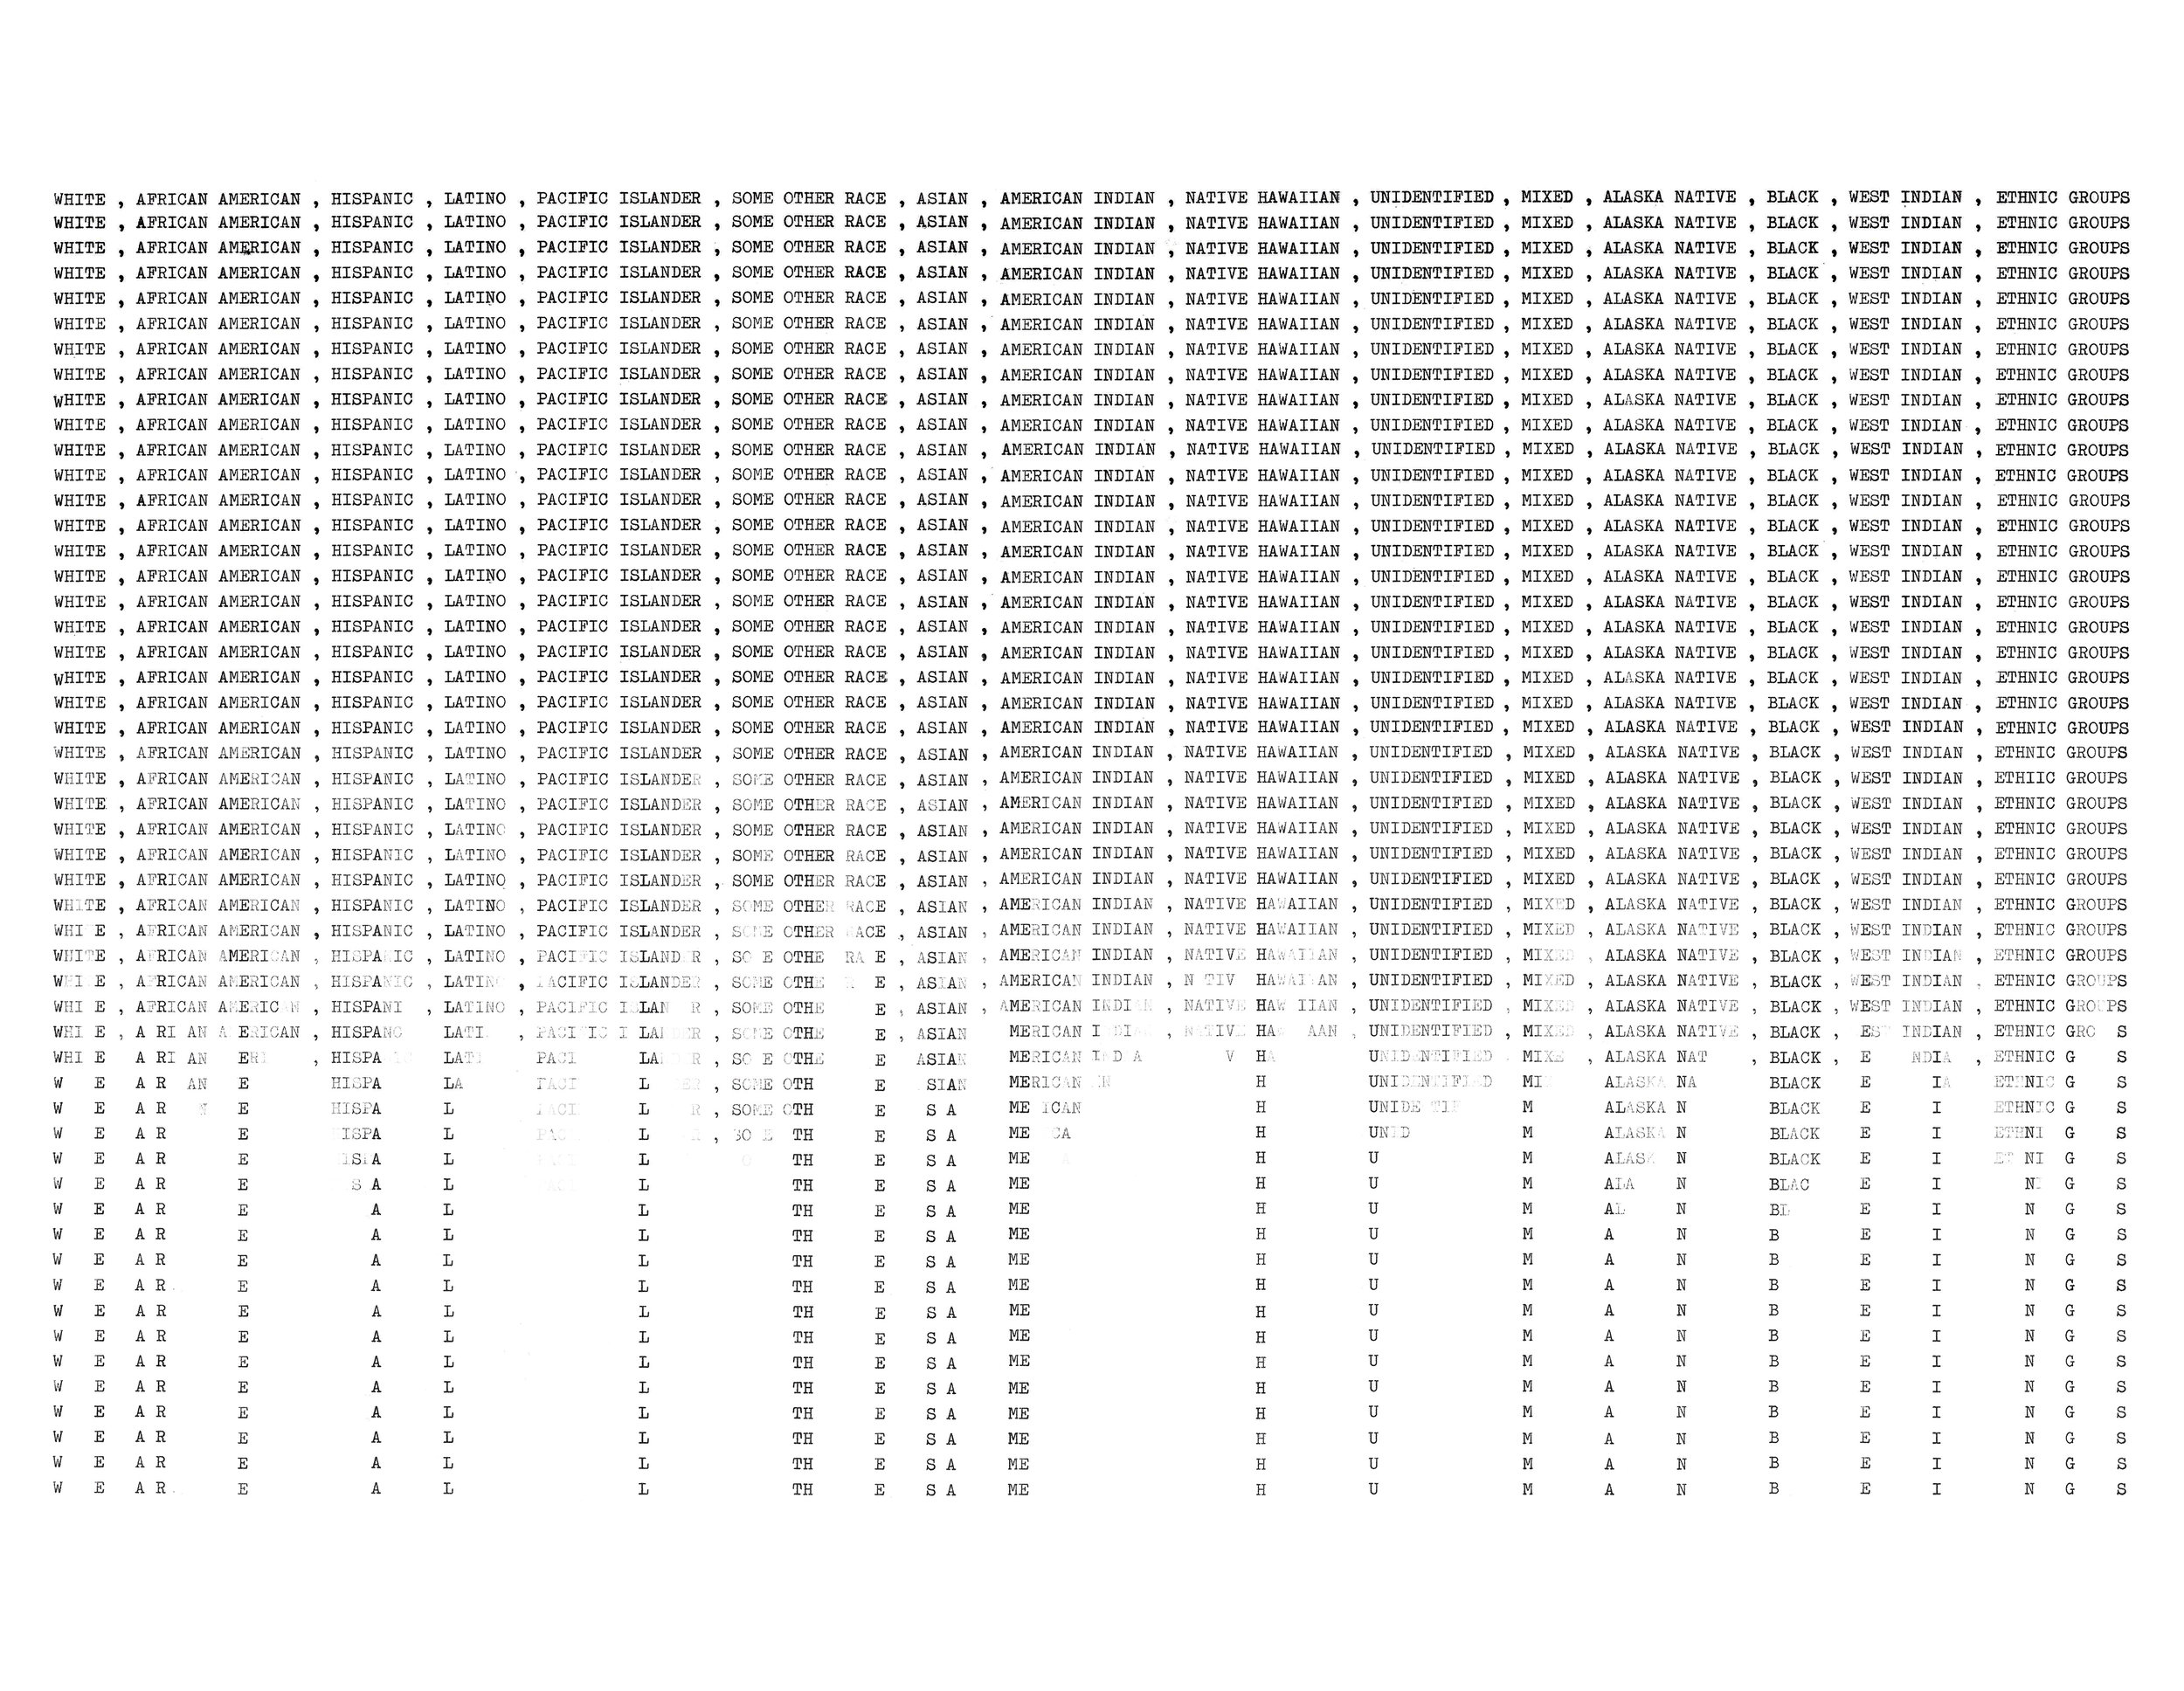 WE ARE THE SAME HUMAN BEINGS, 2019, Typewriter Art on Japanese paper, 22 x 14 inches